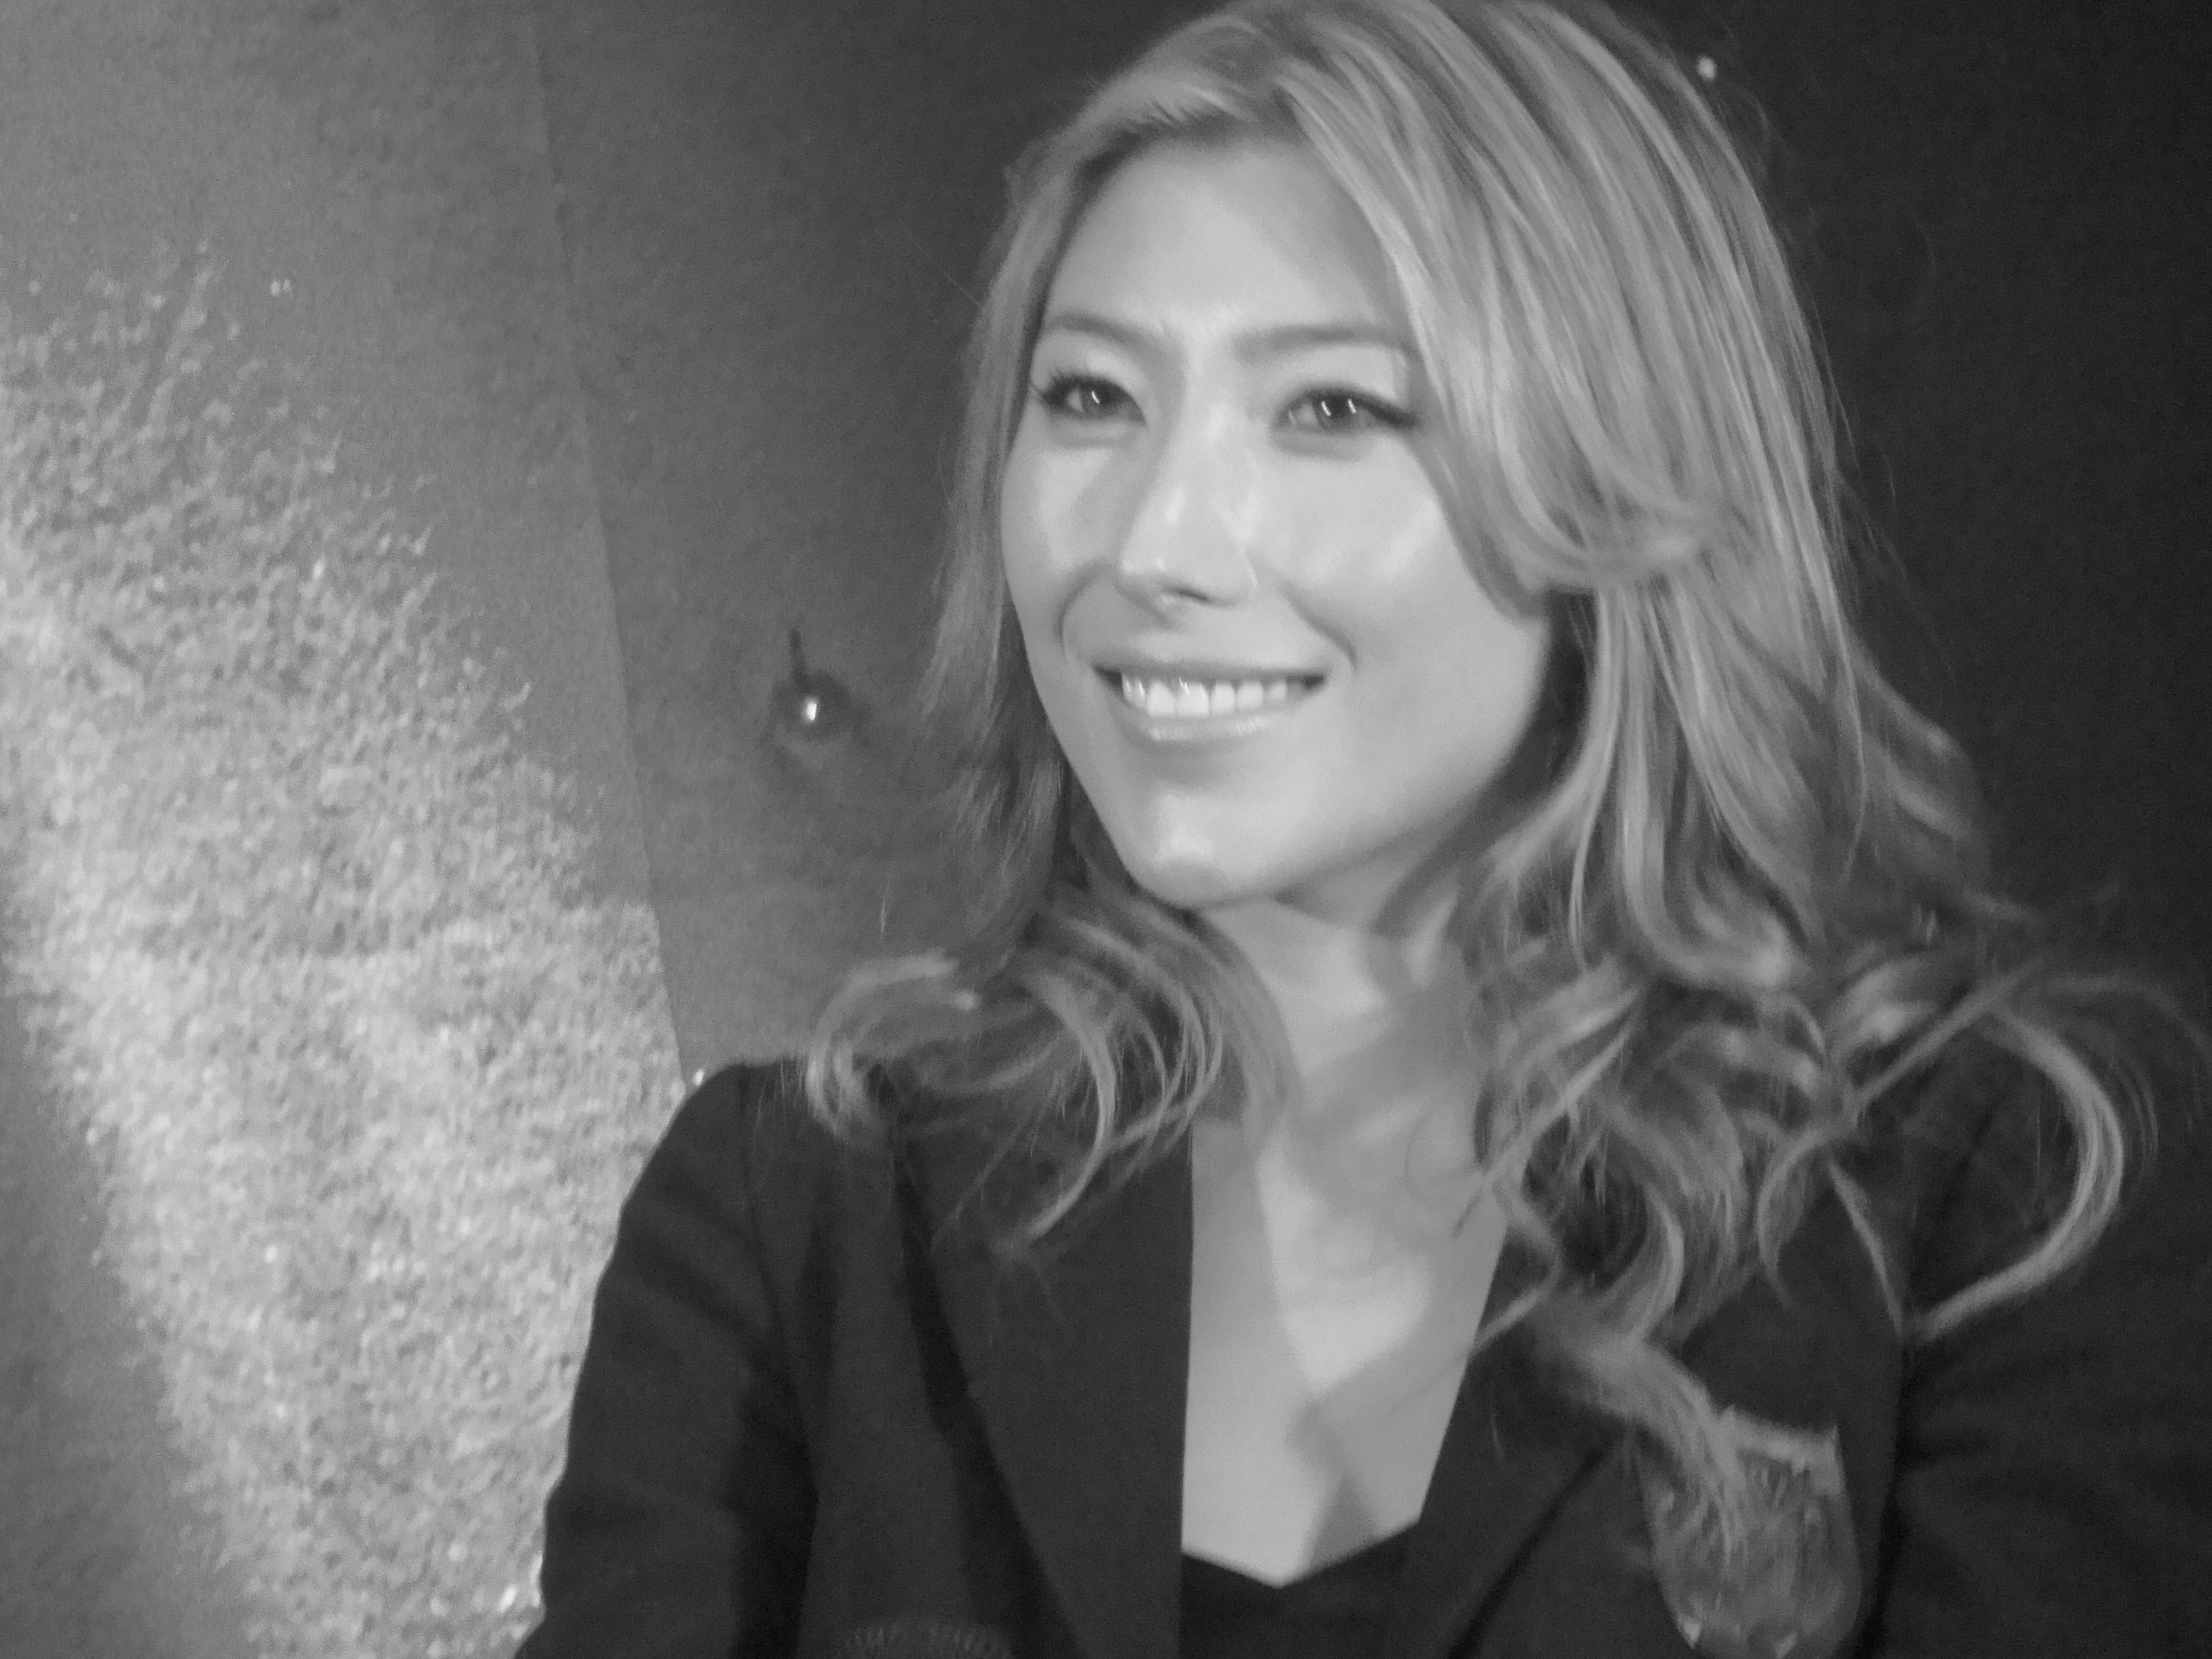 dichen lachman supergirldichen lachman supergirl, dichen lachman instagram, dichen lachman photoshoot, dichen lachman, dichen lachman imdb, dichen lachman the 100, dichen lachman agents of shield, dichen lachman tumblr, dichen lachman wiki, dichen lachman movies and tv shows, dichen lachman being human, dichen lachman gif, dichen lachman baby, dichen lachman neighbours